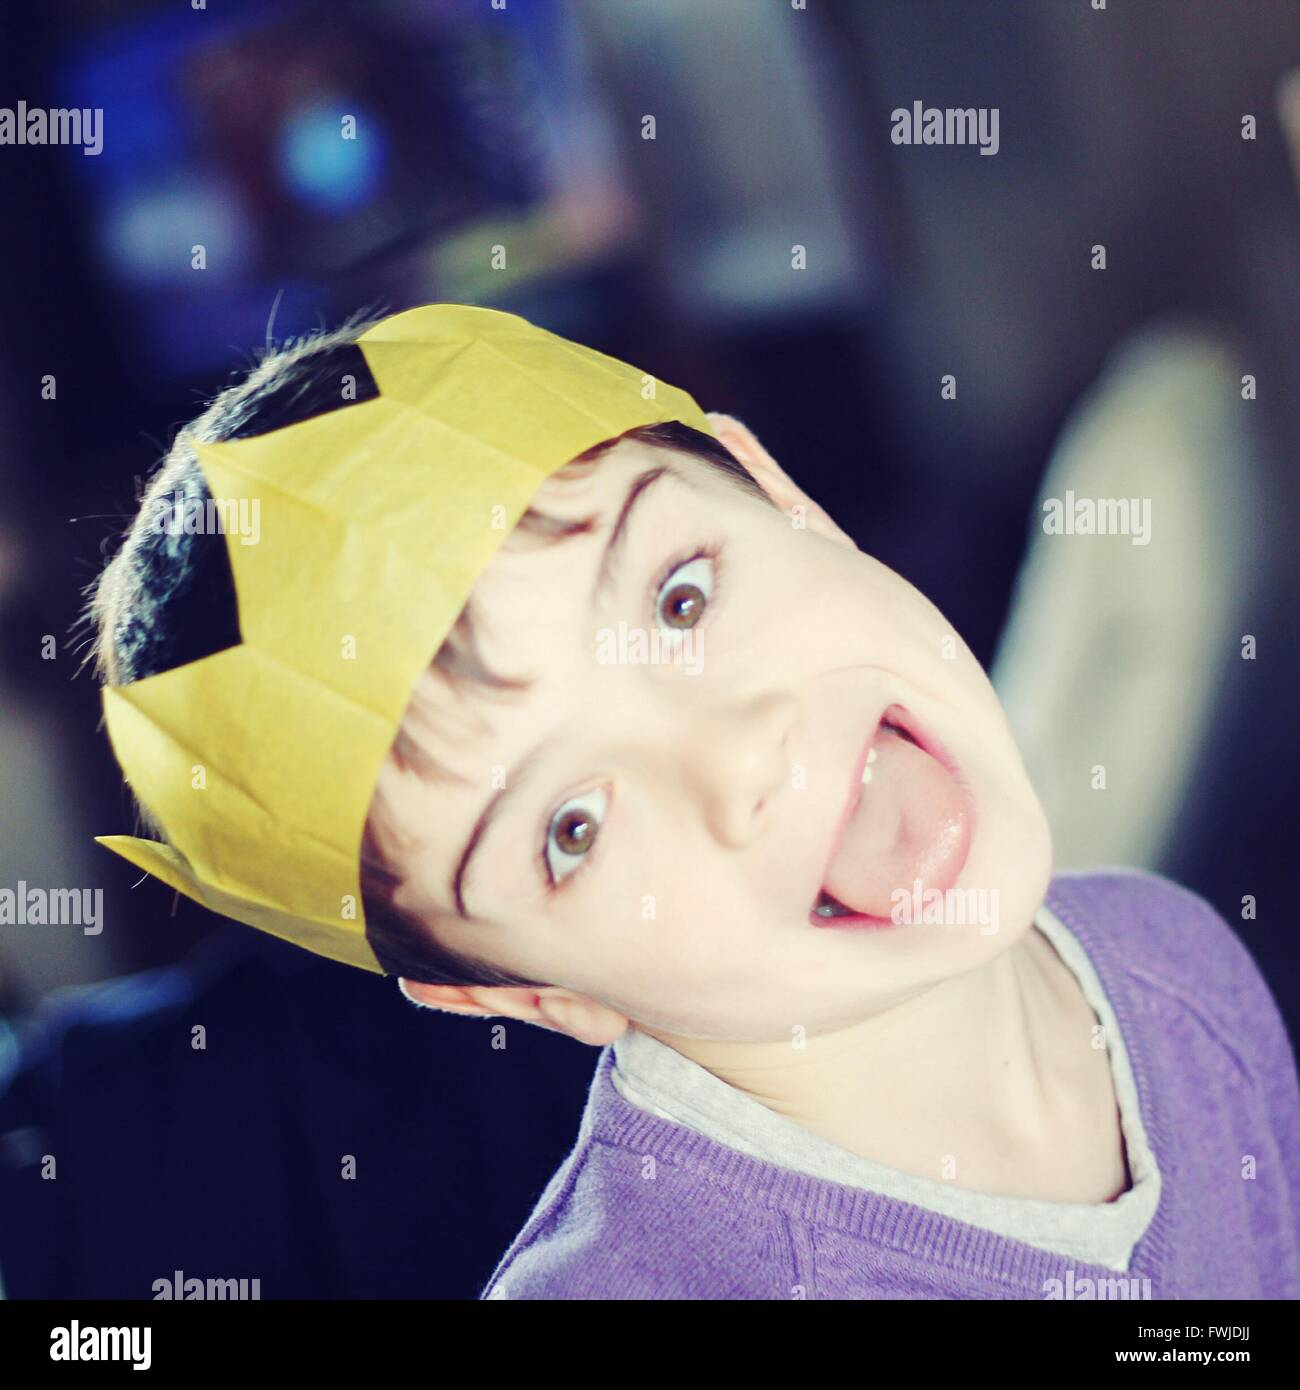 6b9b20b5e0edc Close-Up Portrait Of Boy Wearing Paper Crown During Christmas Stock ...